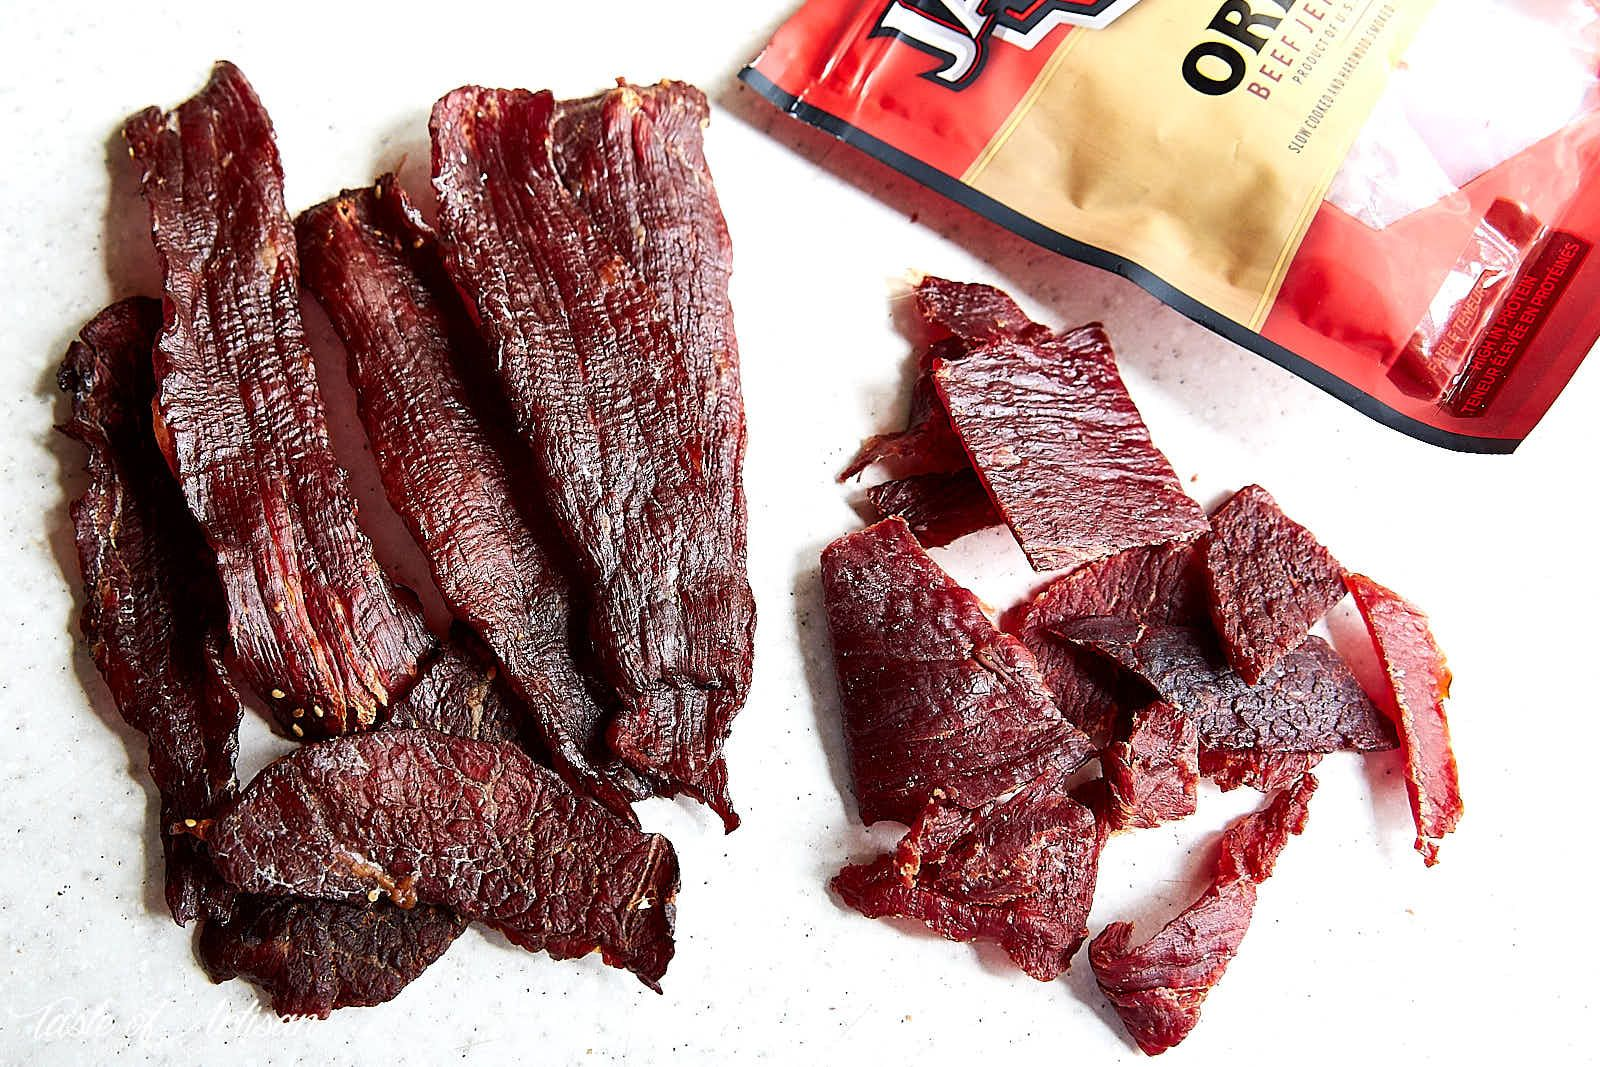 How To Make Beef Jerky In The Oven Comparison To Jack Links Jerky Taste Of Artisan Oven Jerky Oven Beef Jerky Jerky Recipes